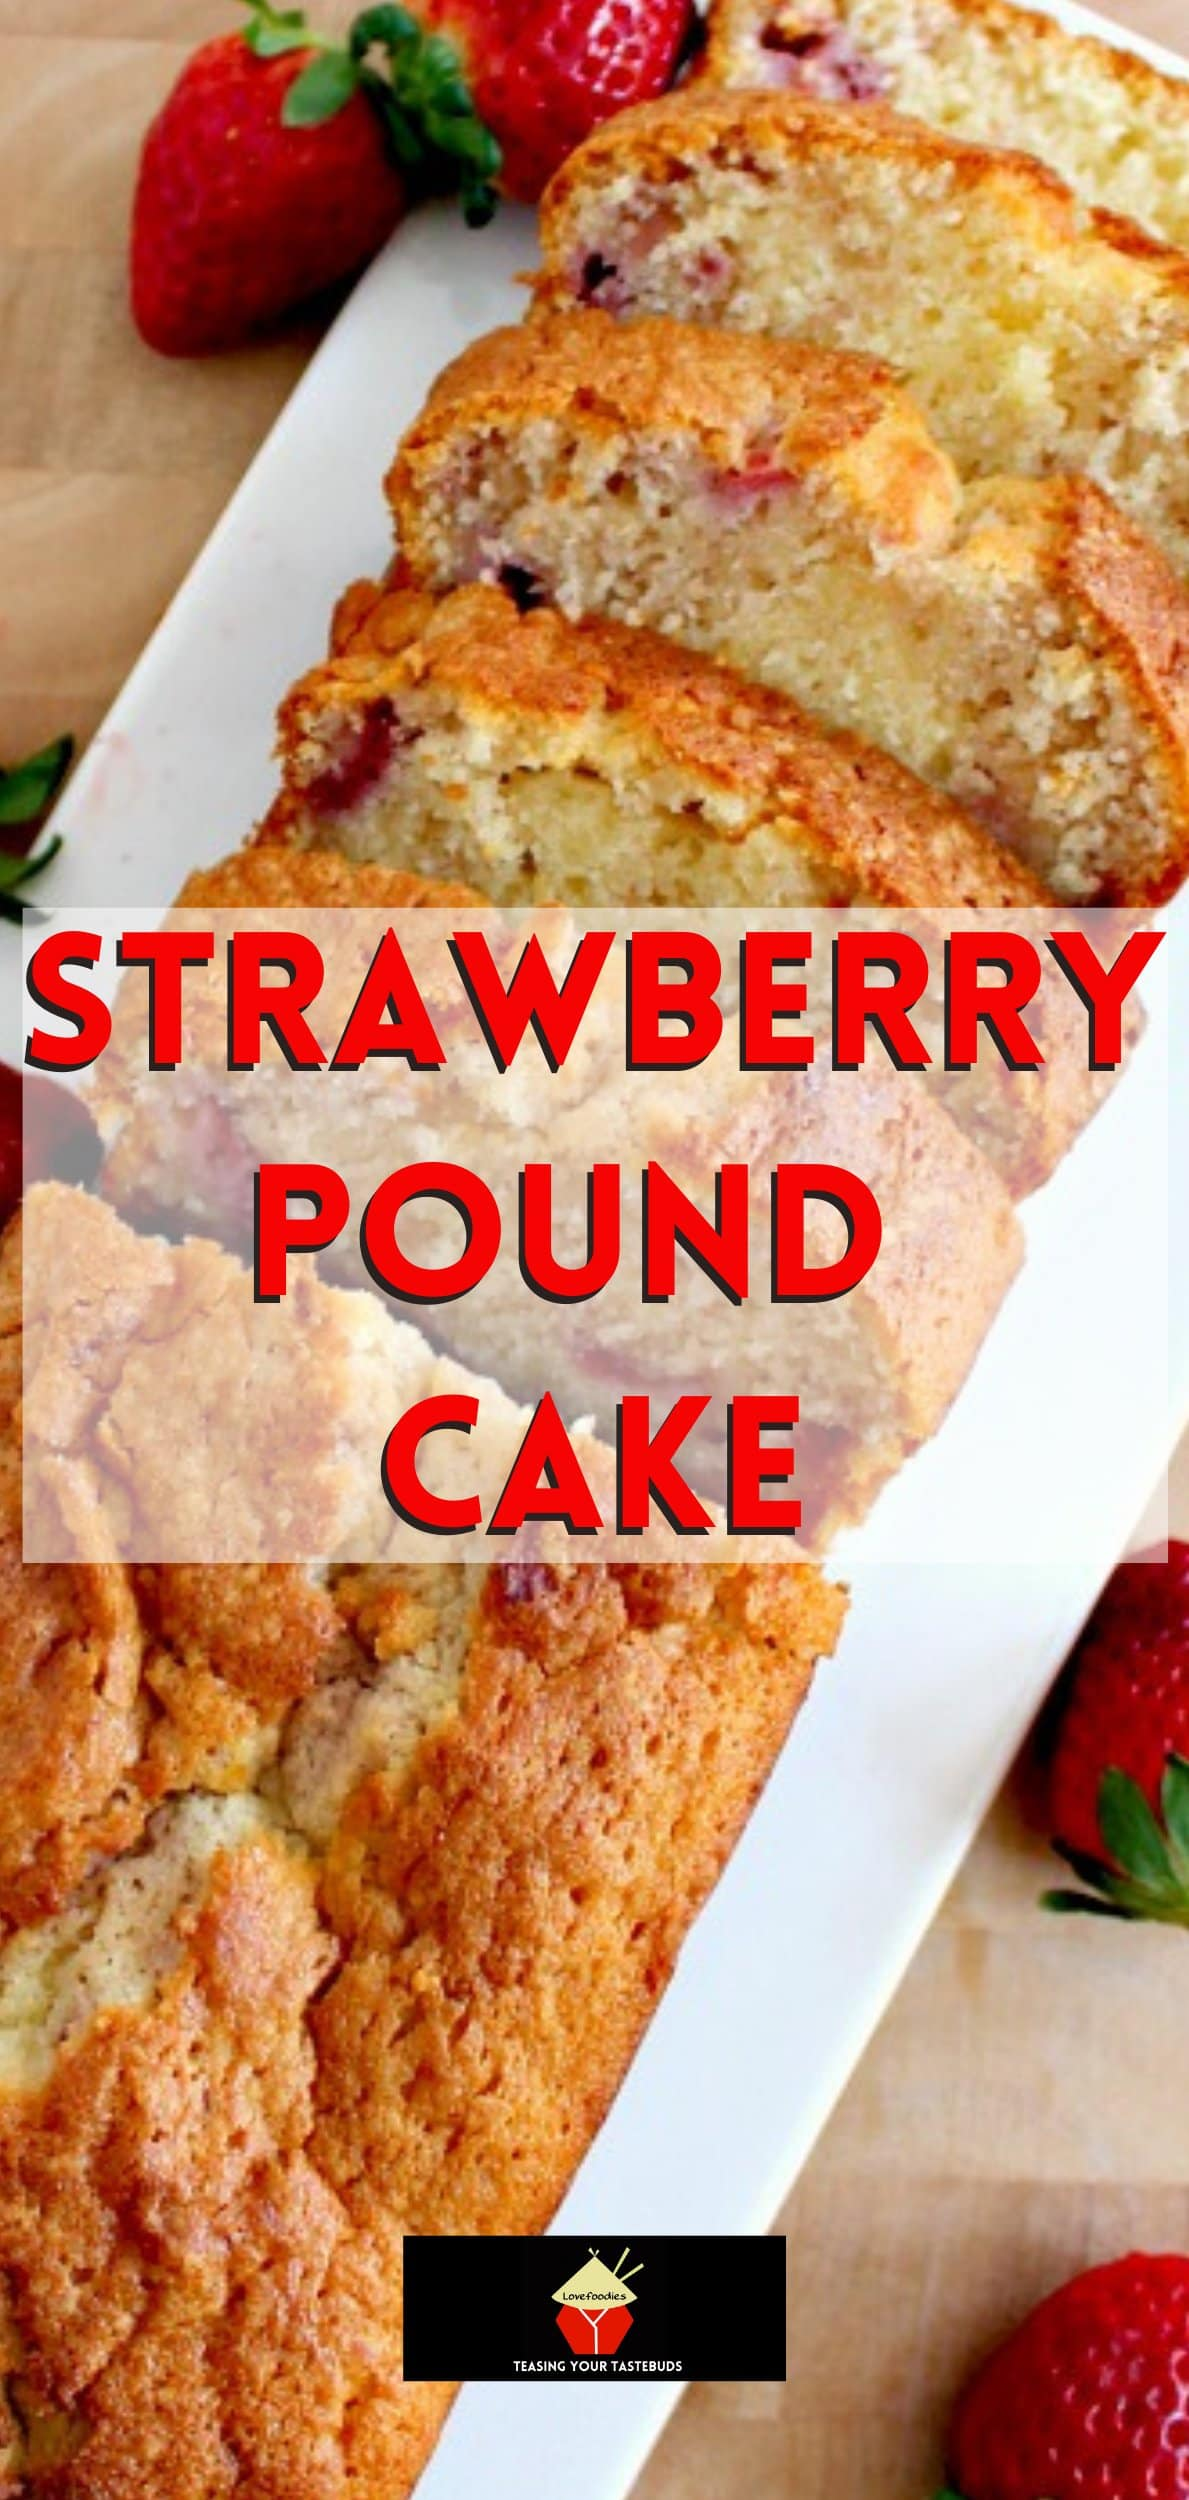 Strawberry Pound Cake. A delicious recipe bursting with fresh strawberries. Soft, moist, and perfect with a morning coffee or to take to friends!